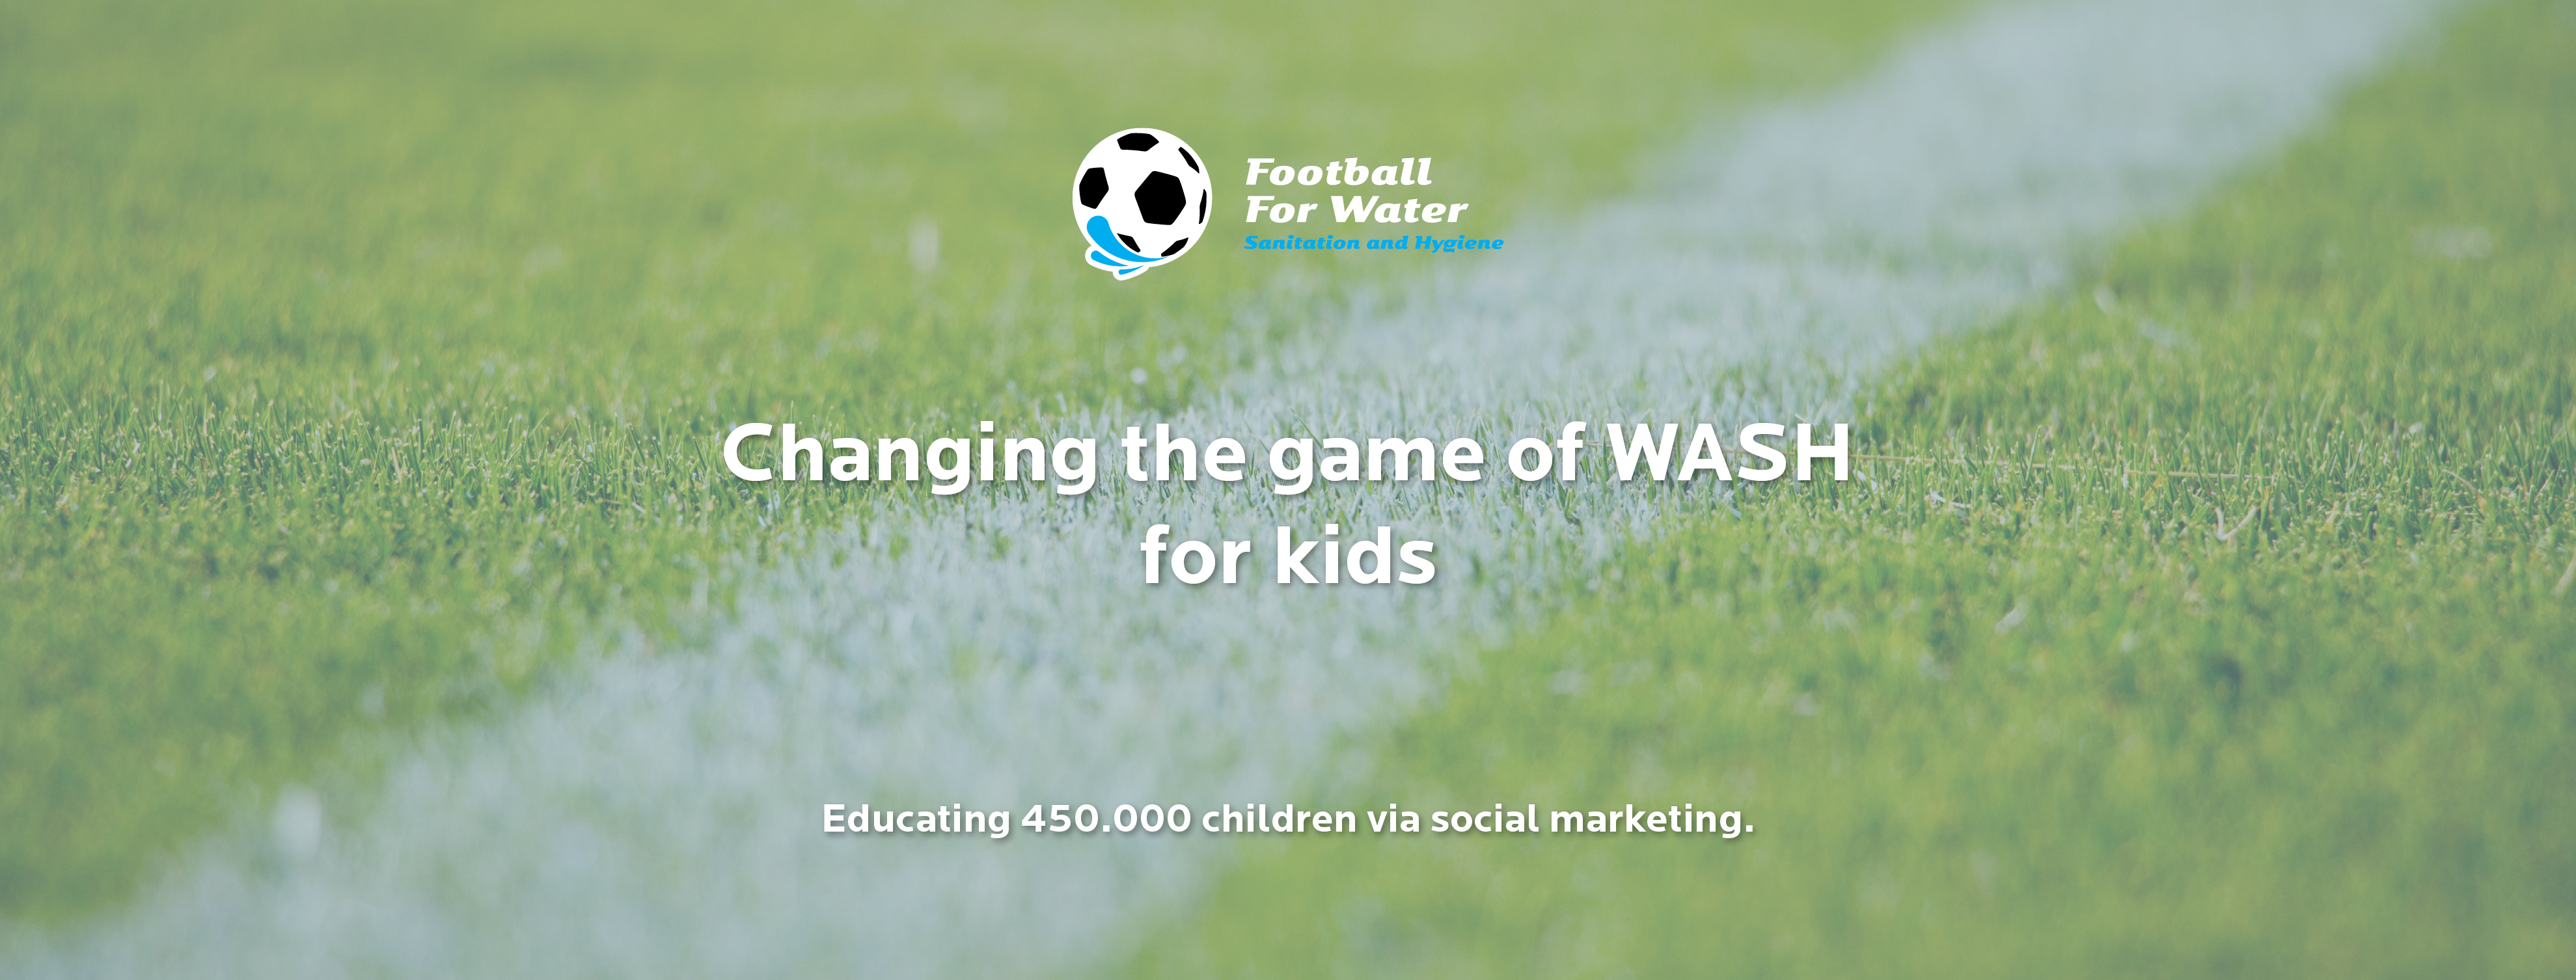 Meaningful marketing for Football for Water